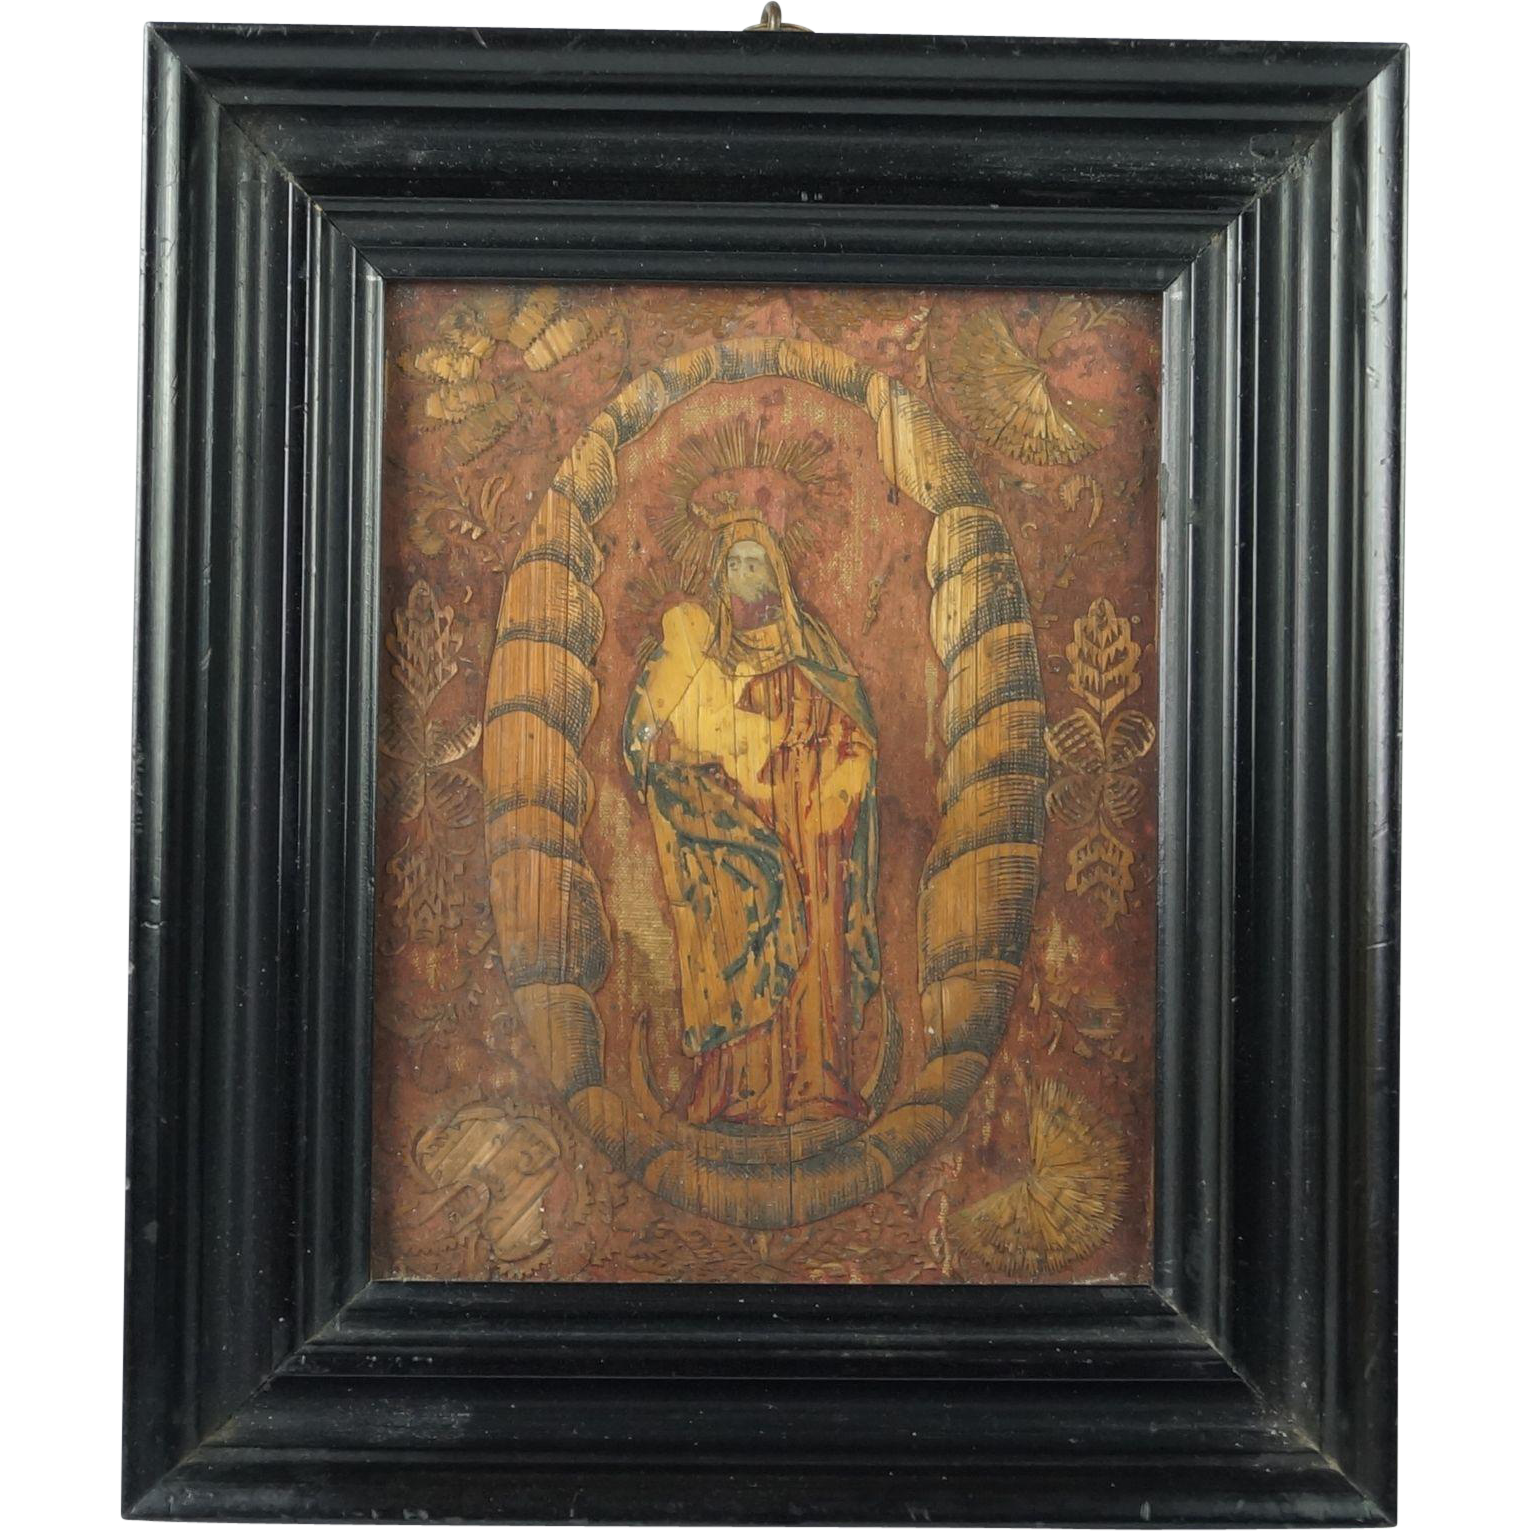 17th Century ICON Straw Work Marquetry Religious Panel Madonna and Child Circa 1600s